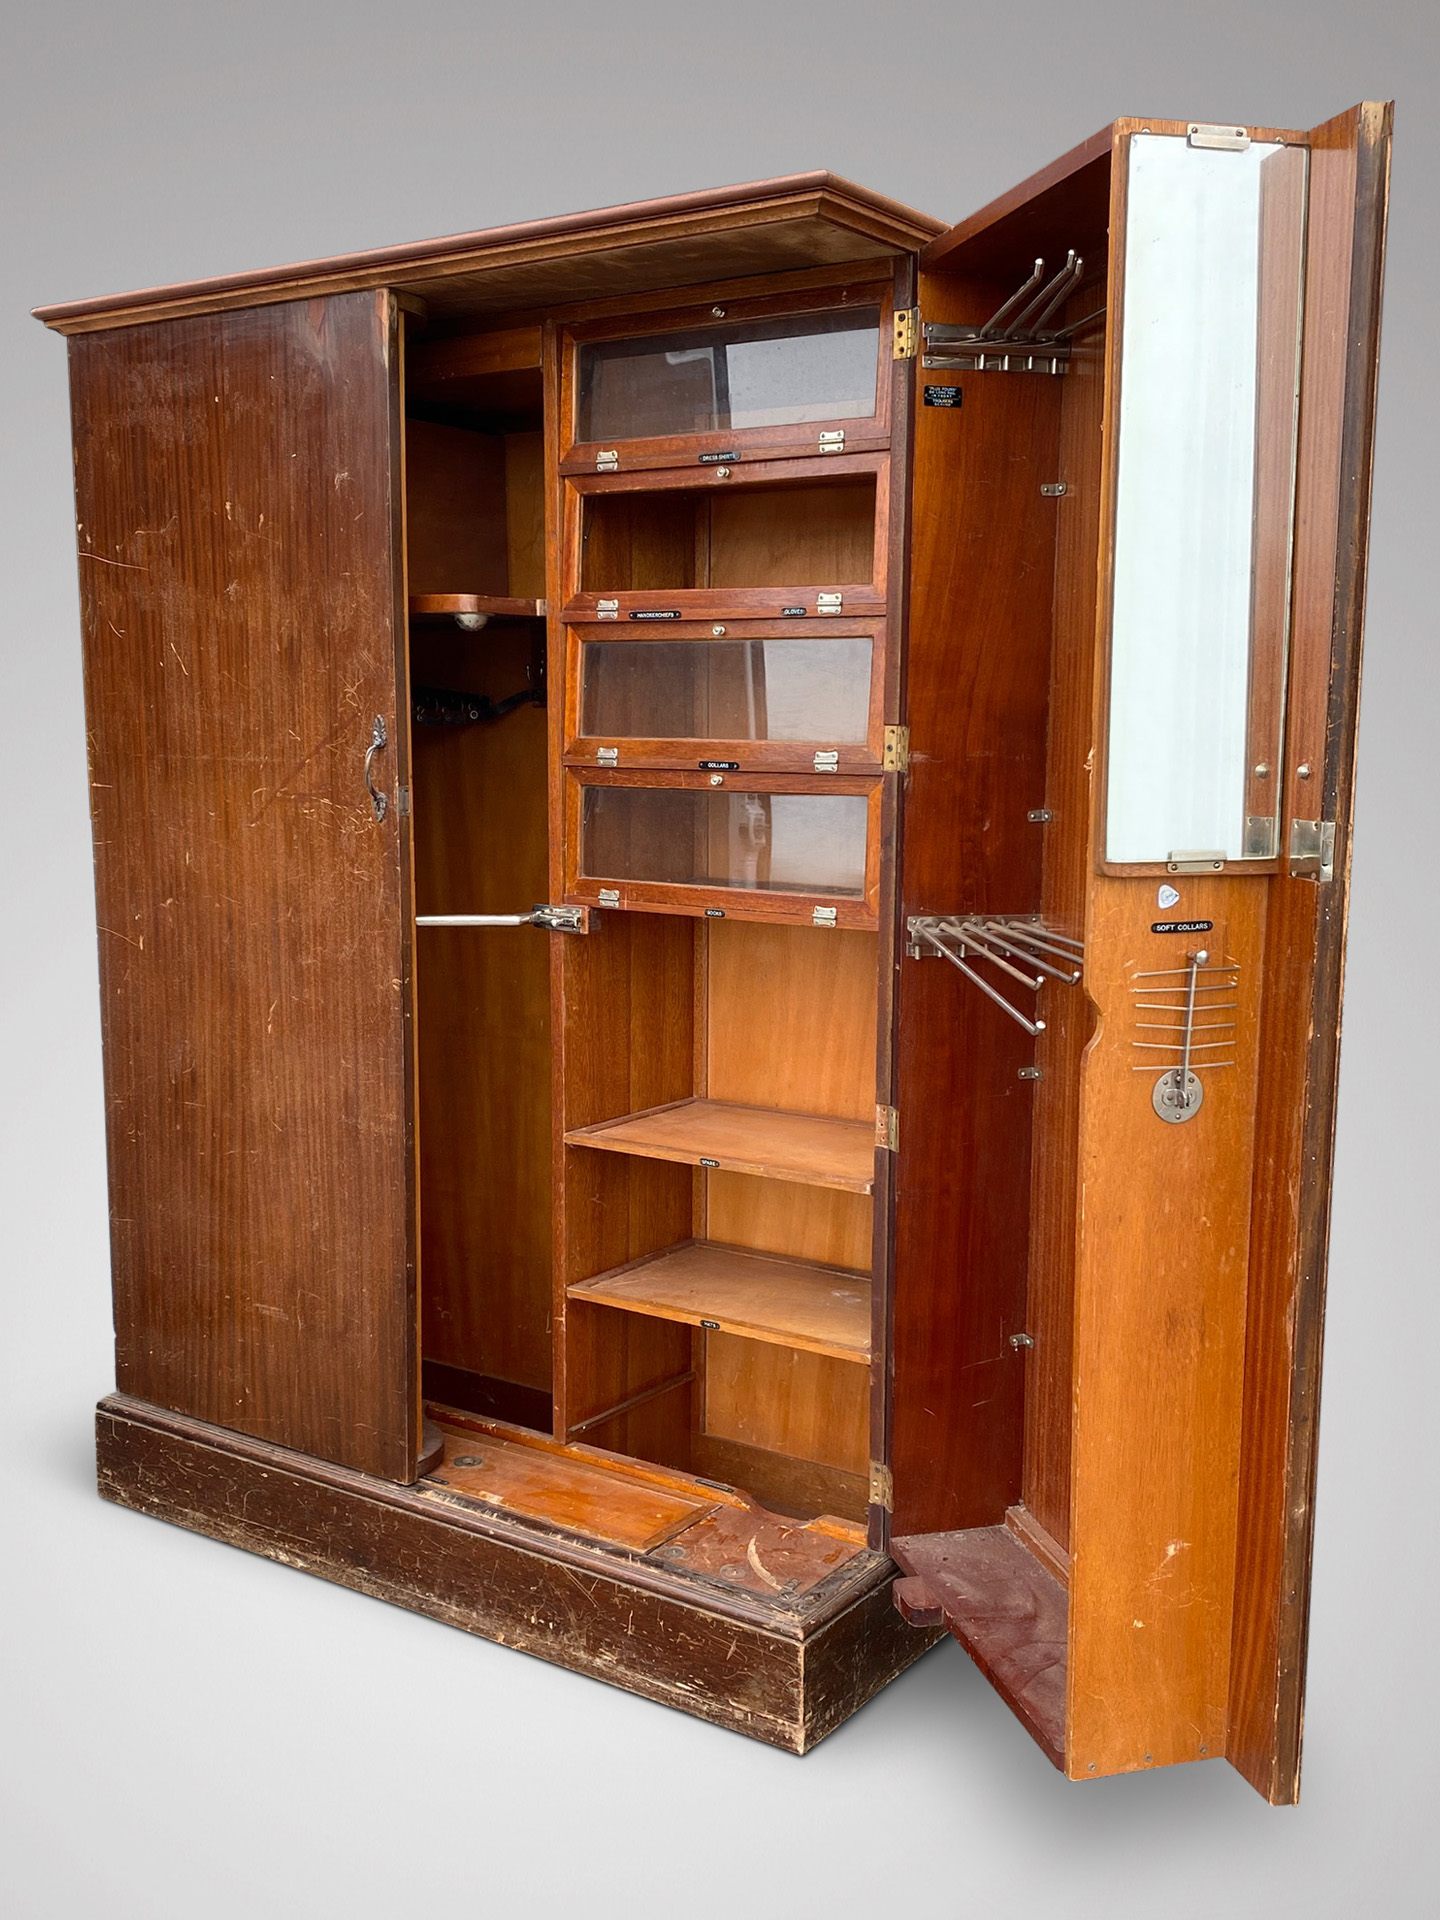 A COMPACTUM GENTLEMANS FITTED WARDROBE